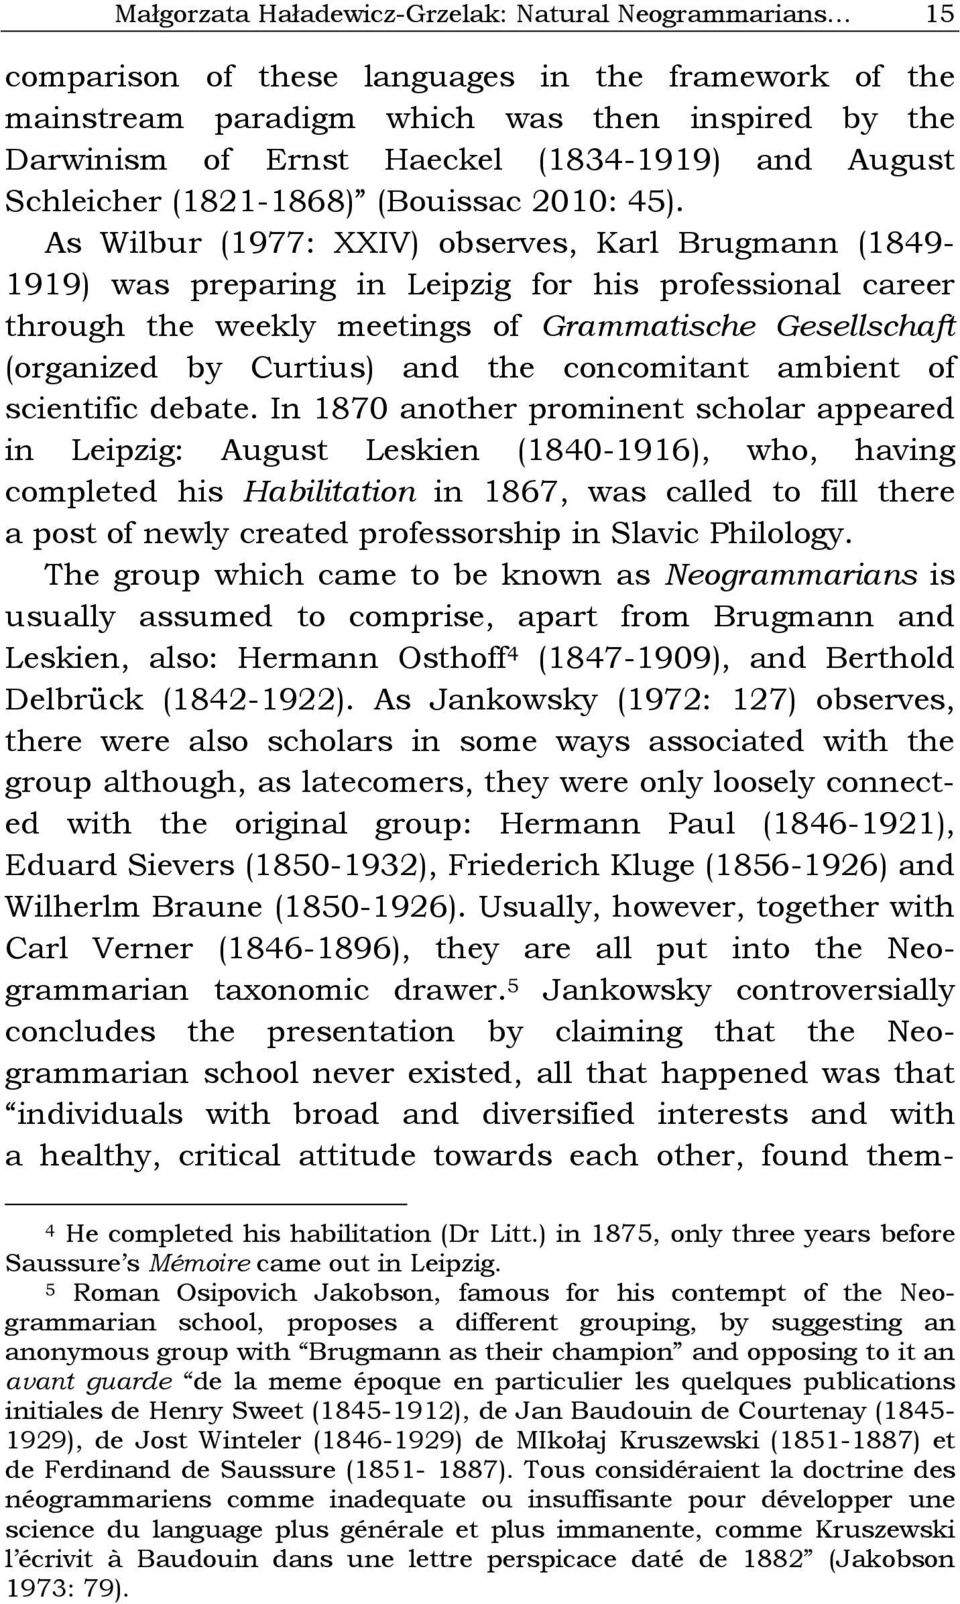 As Wilbur (1977: XXIV) observes, Karl Brugmann (1849-1919) was preparing in Leipzig for his professional career through the weekly meetings of Grammatische Gesellschaft (organized by Curtius) and the